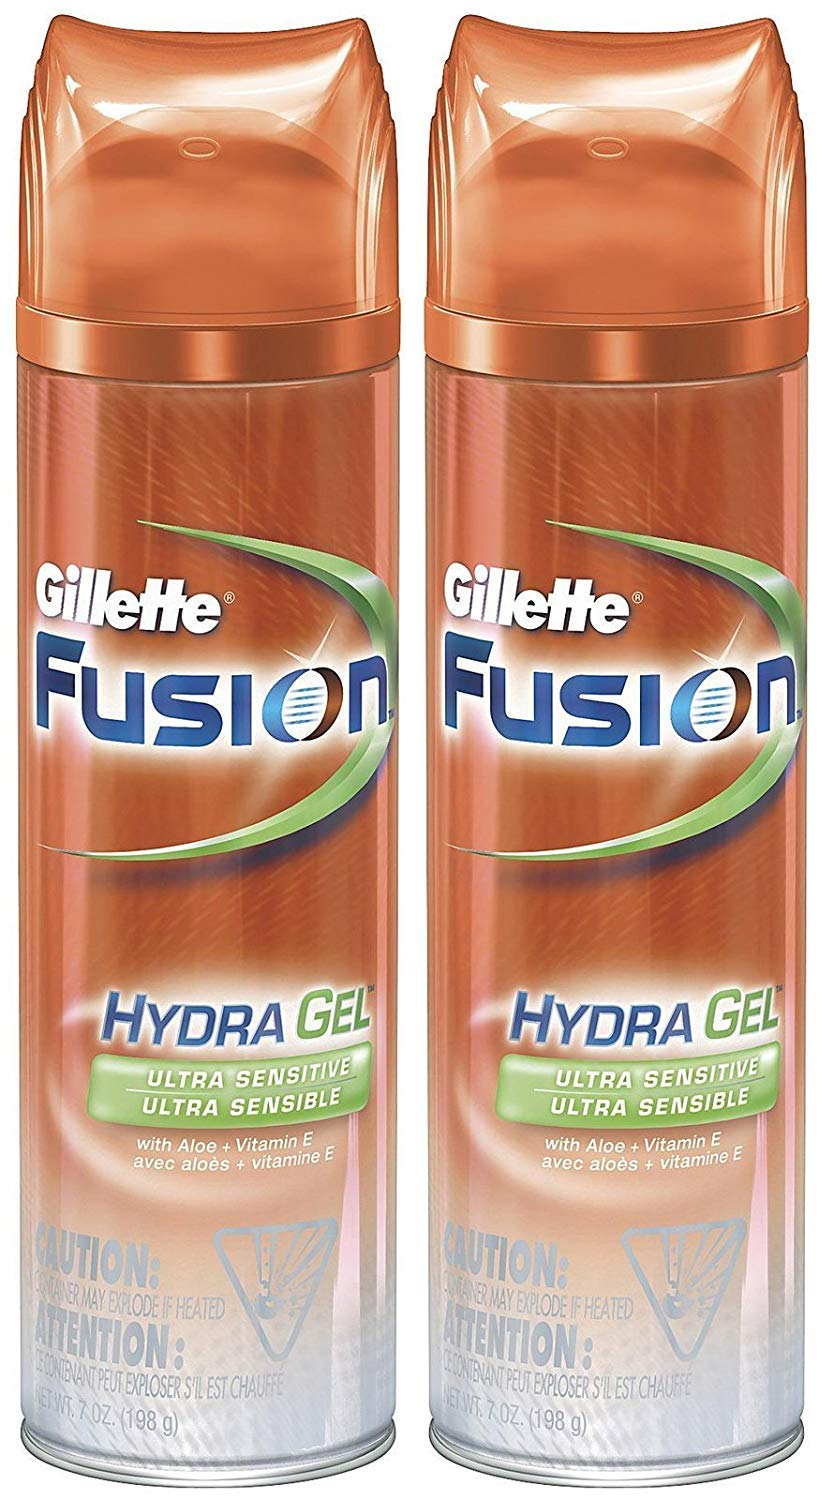 Gillette Fusion Shave Gel Ultra Sensitive 7 Ounce (207ml) (2 Pack)